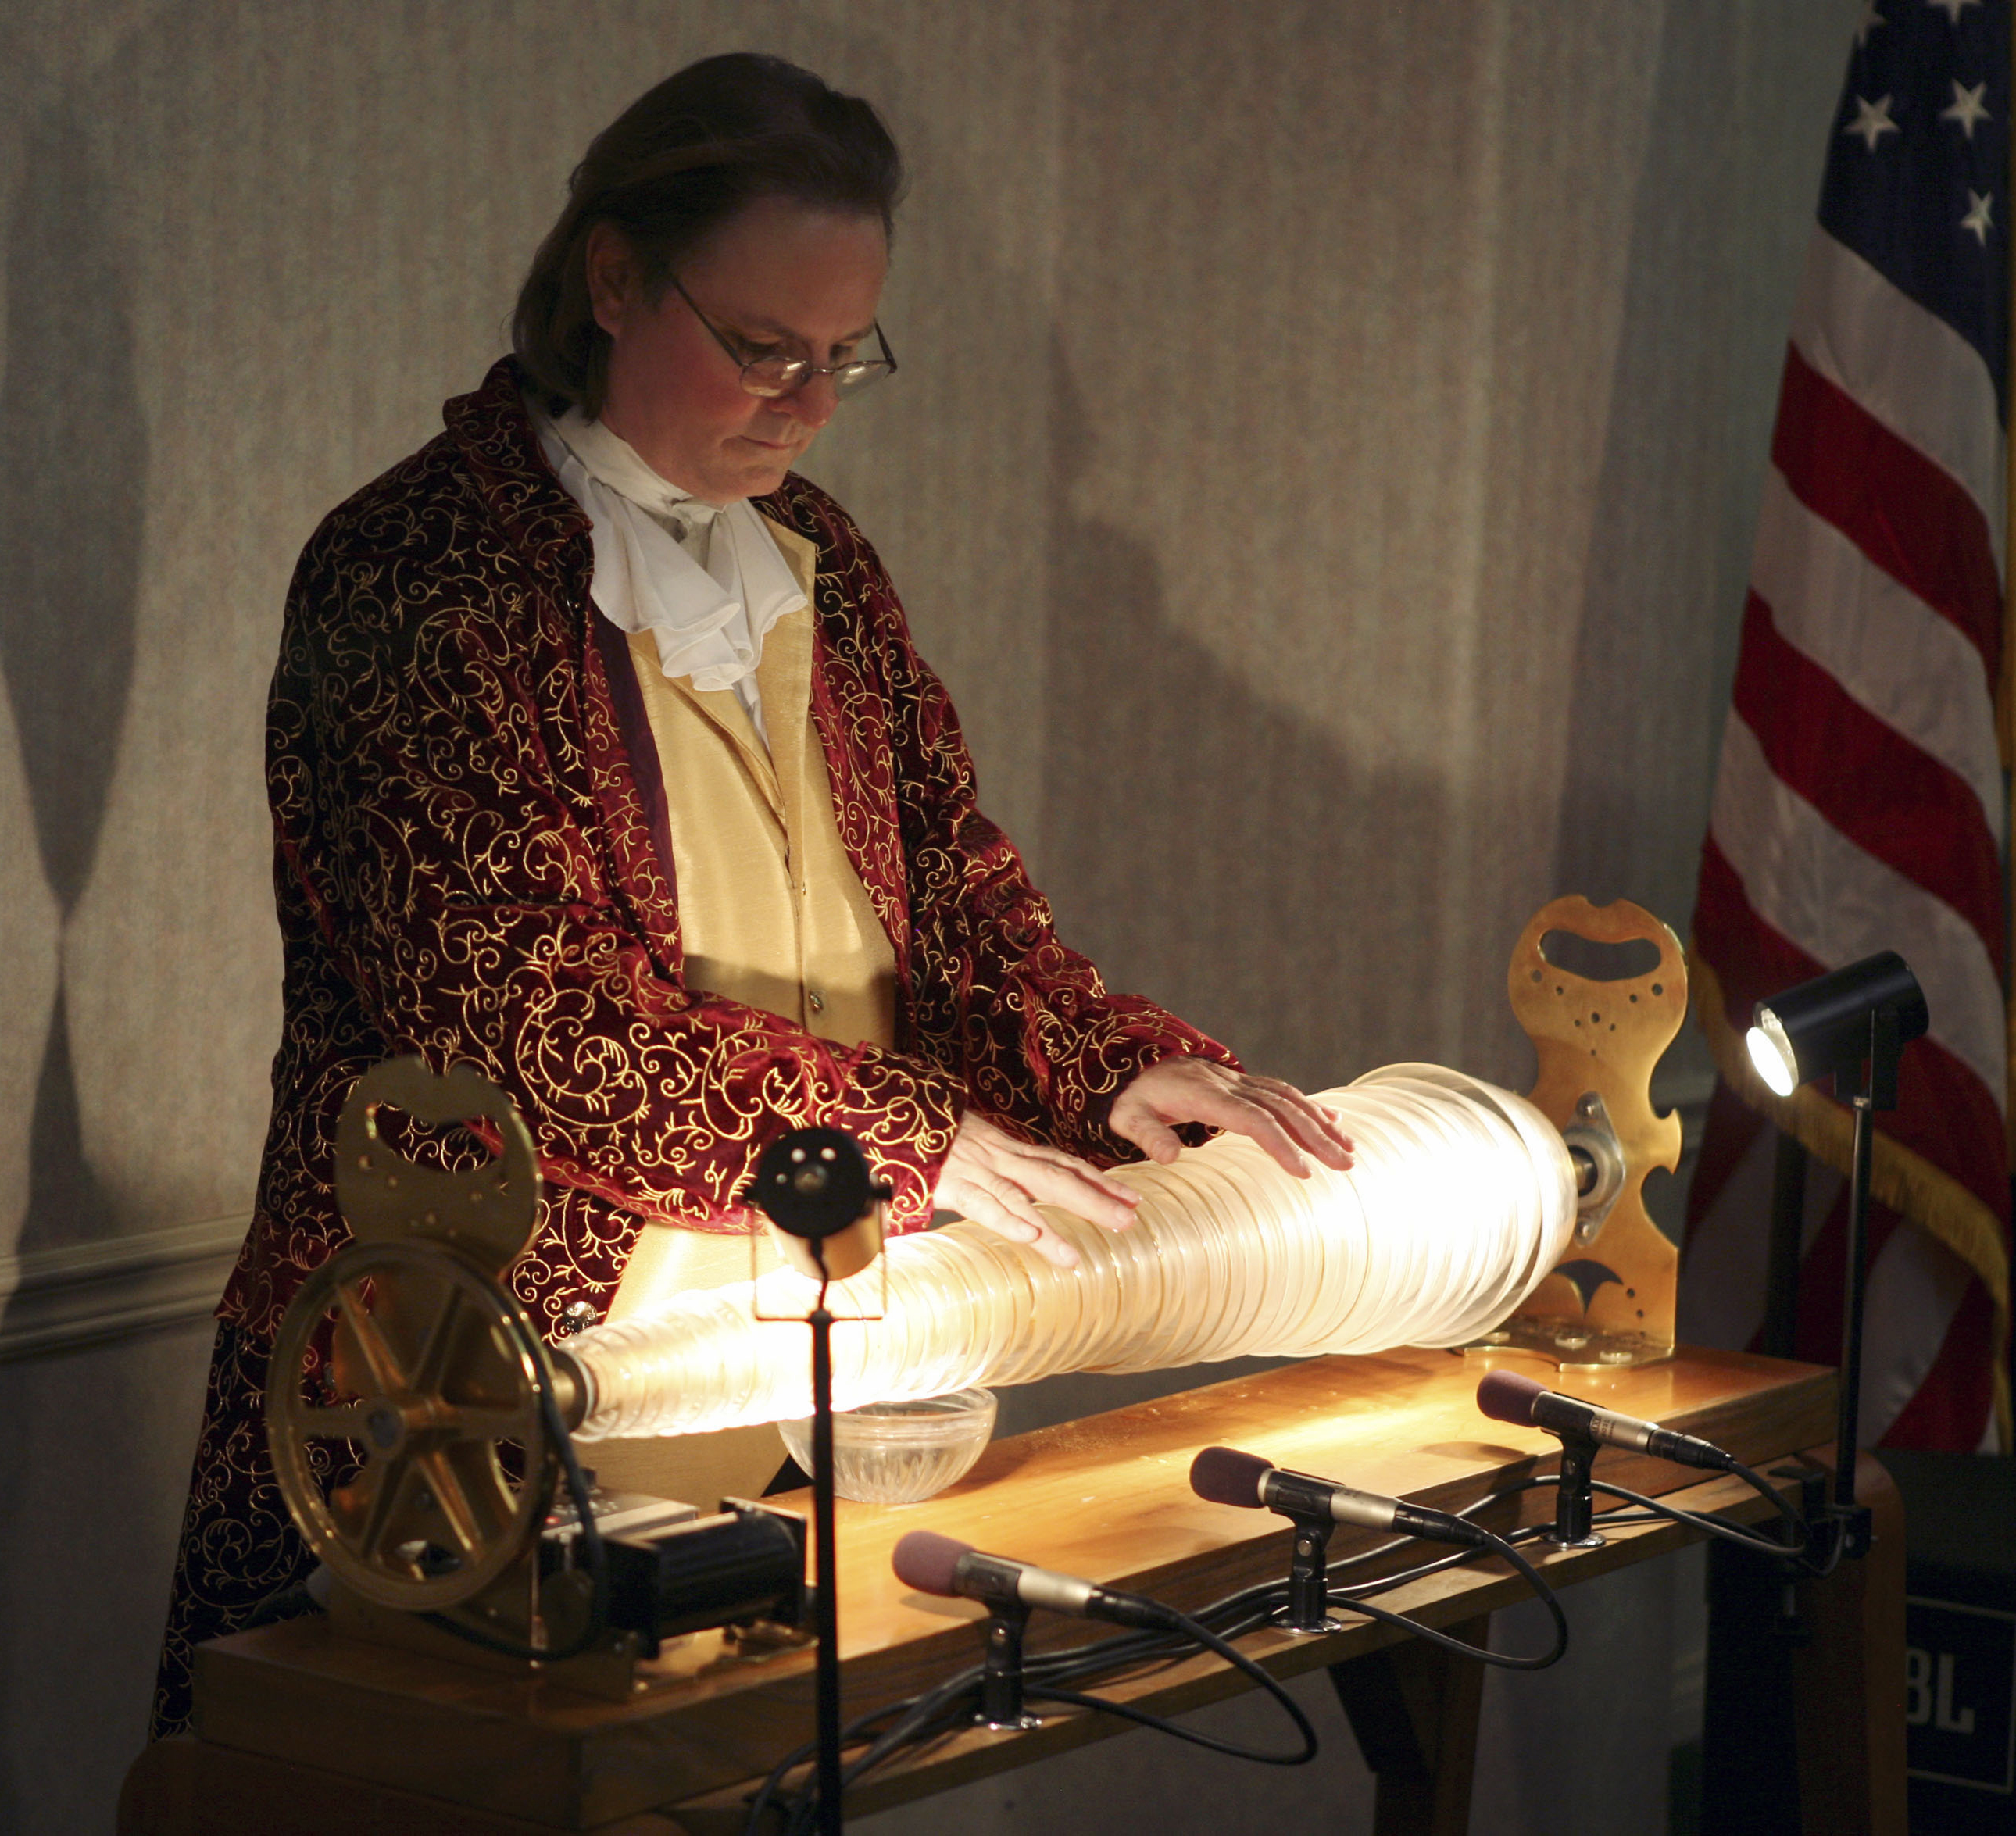 William zeitler playing the glass armonica viewed lengthwise